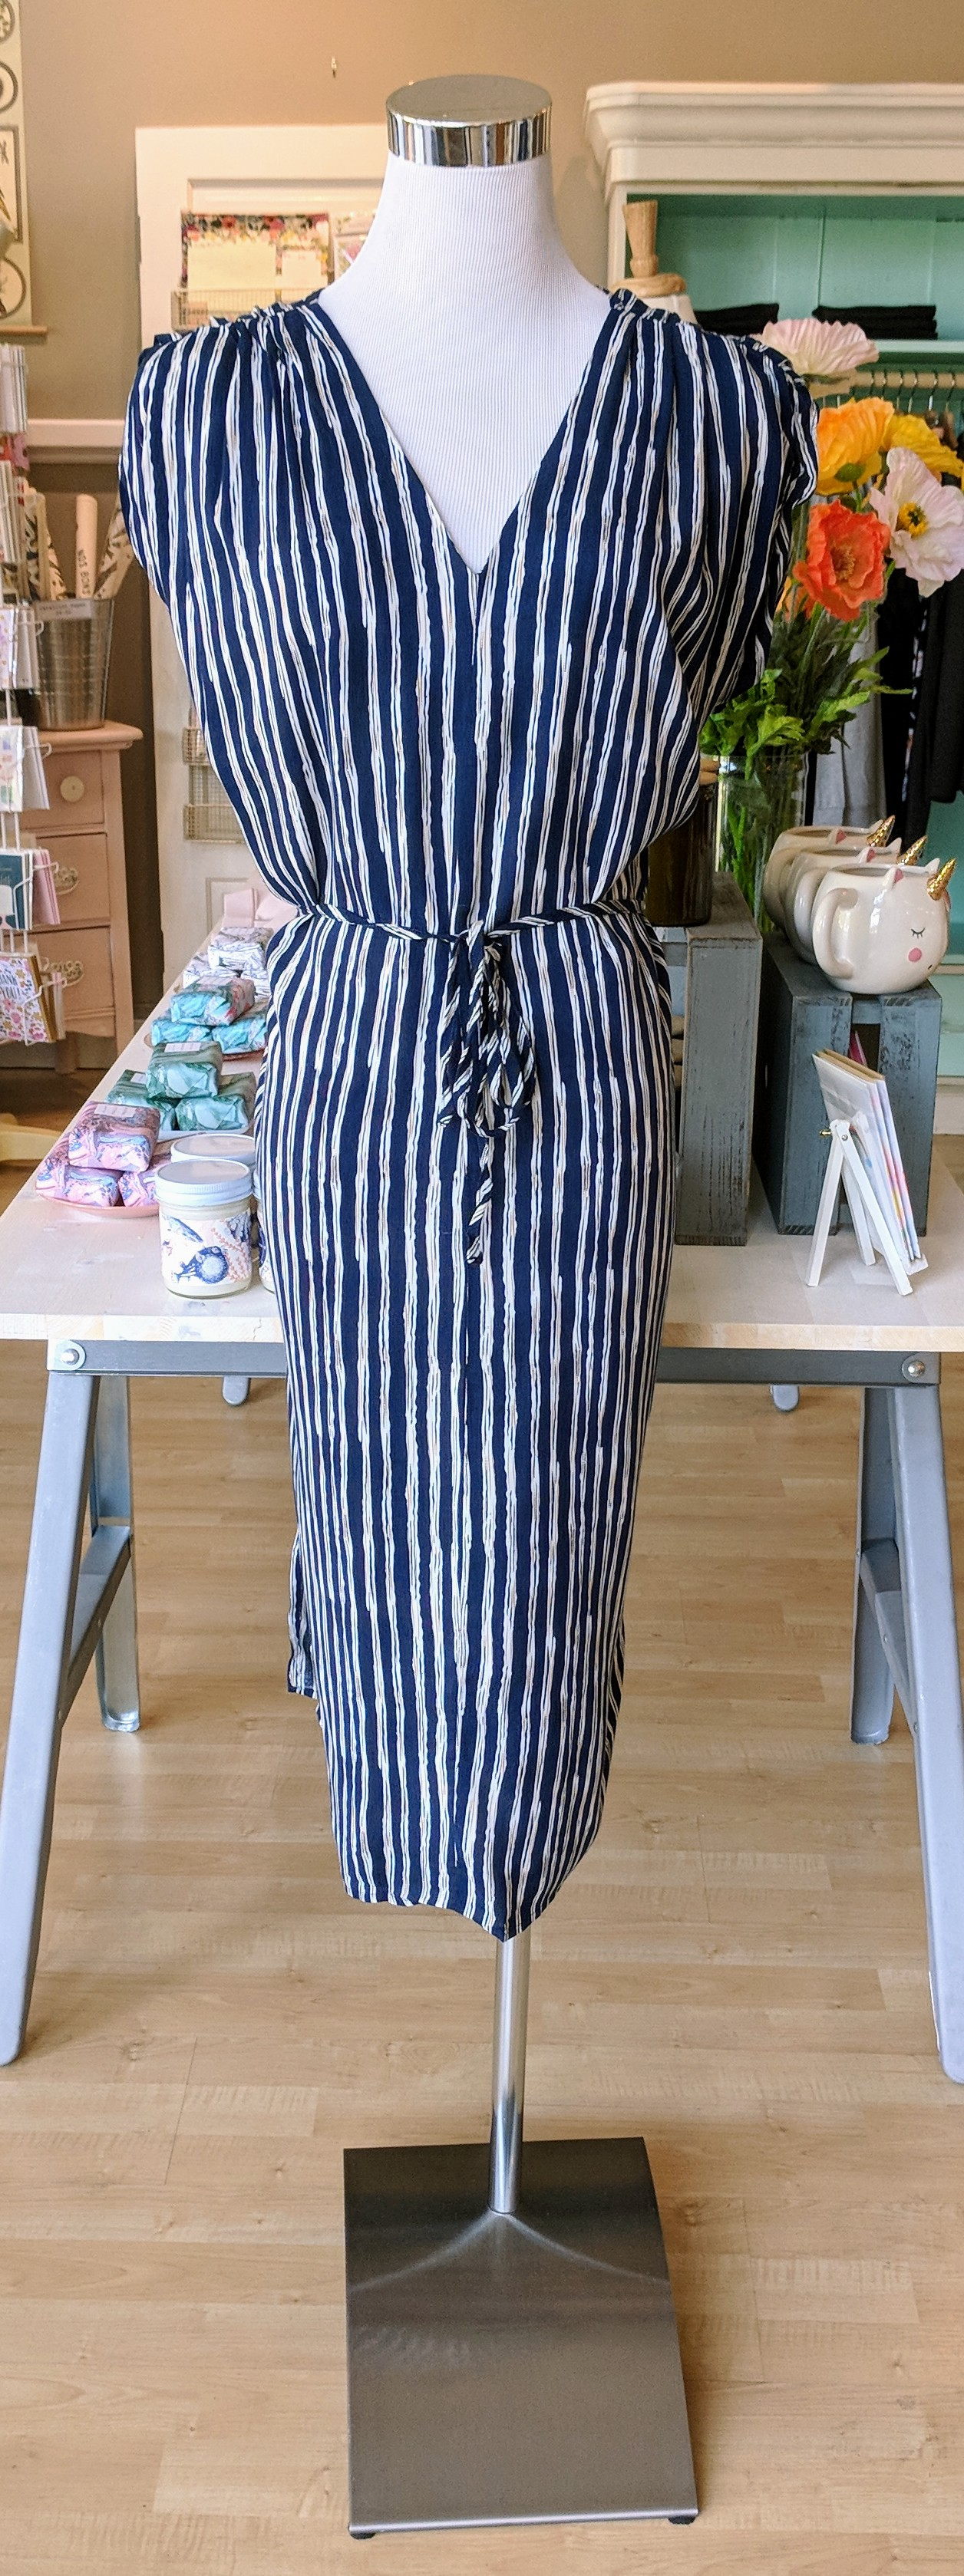 Blue pleated midi dress with tie front.